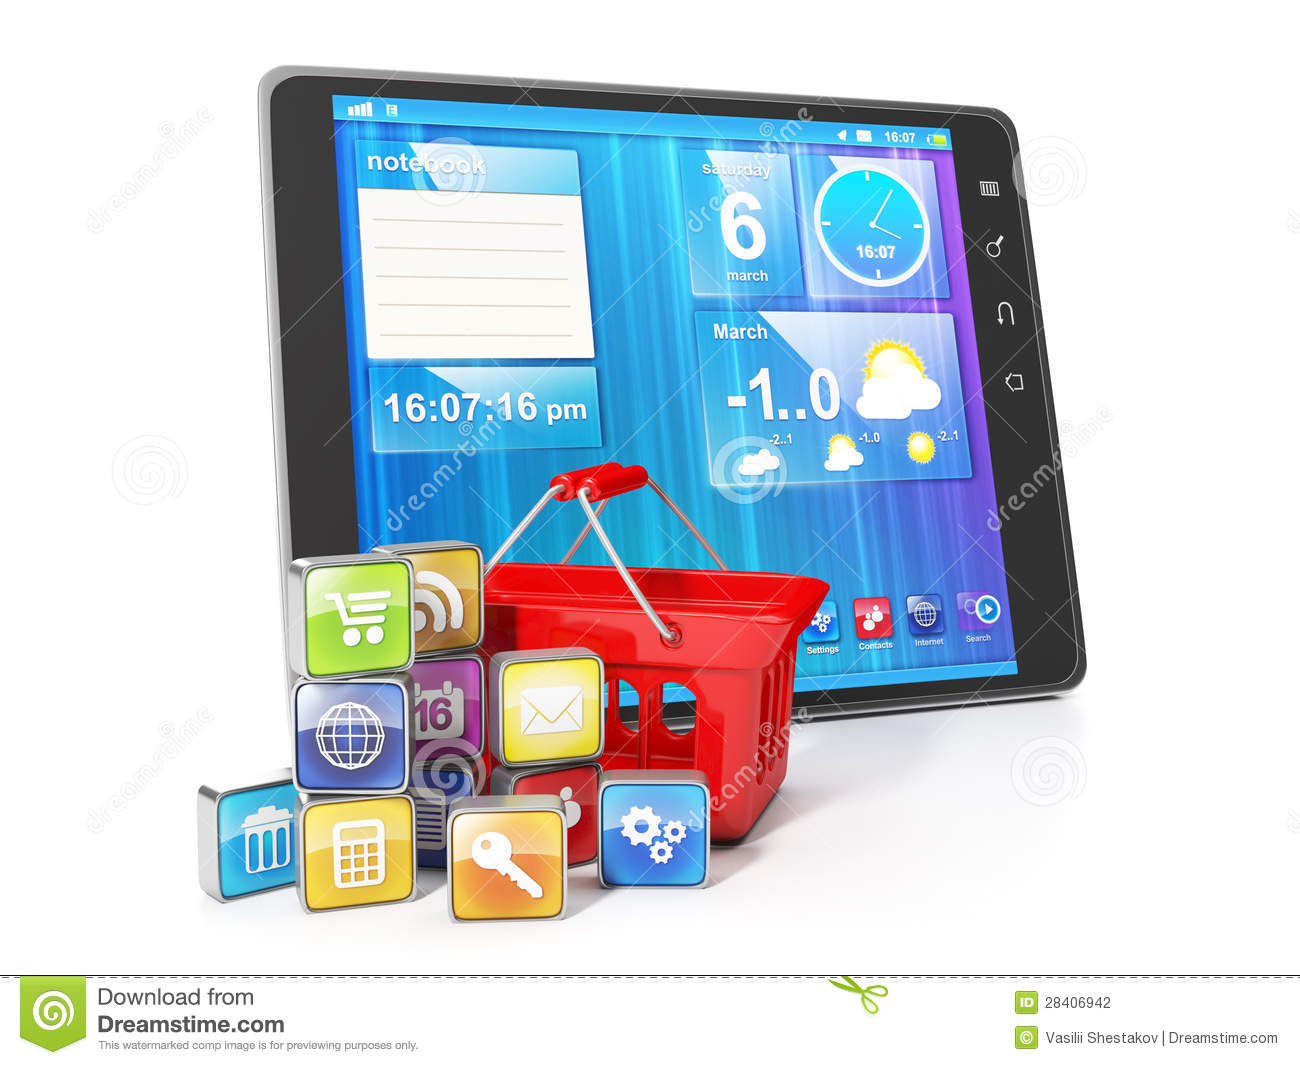 Mobile & Tablet Applications